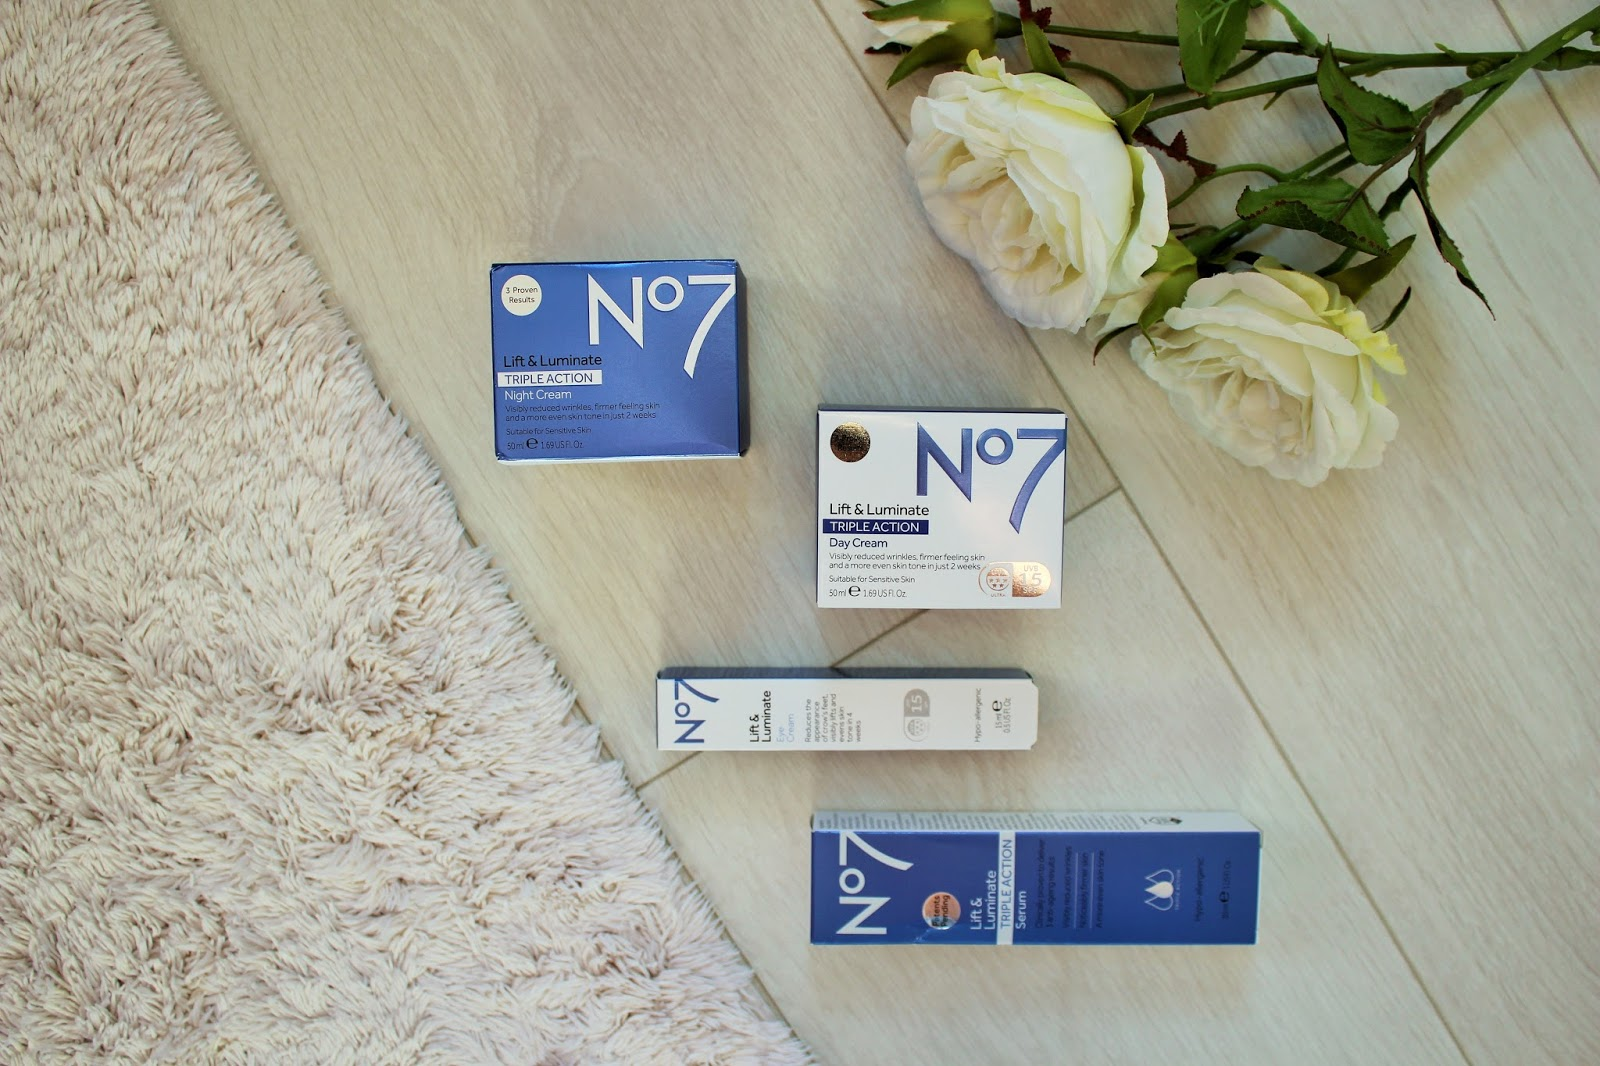 No7 Lift & Luminate Triple Action Range - First Impressions and Giveaway 1